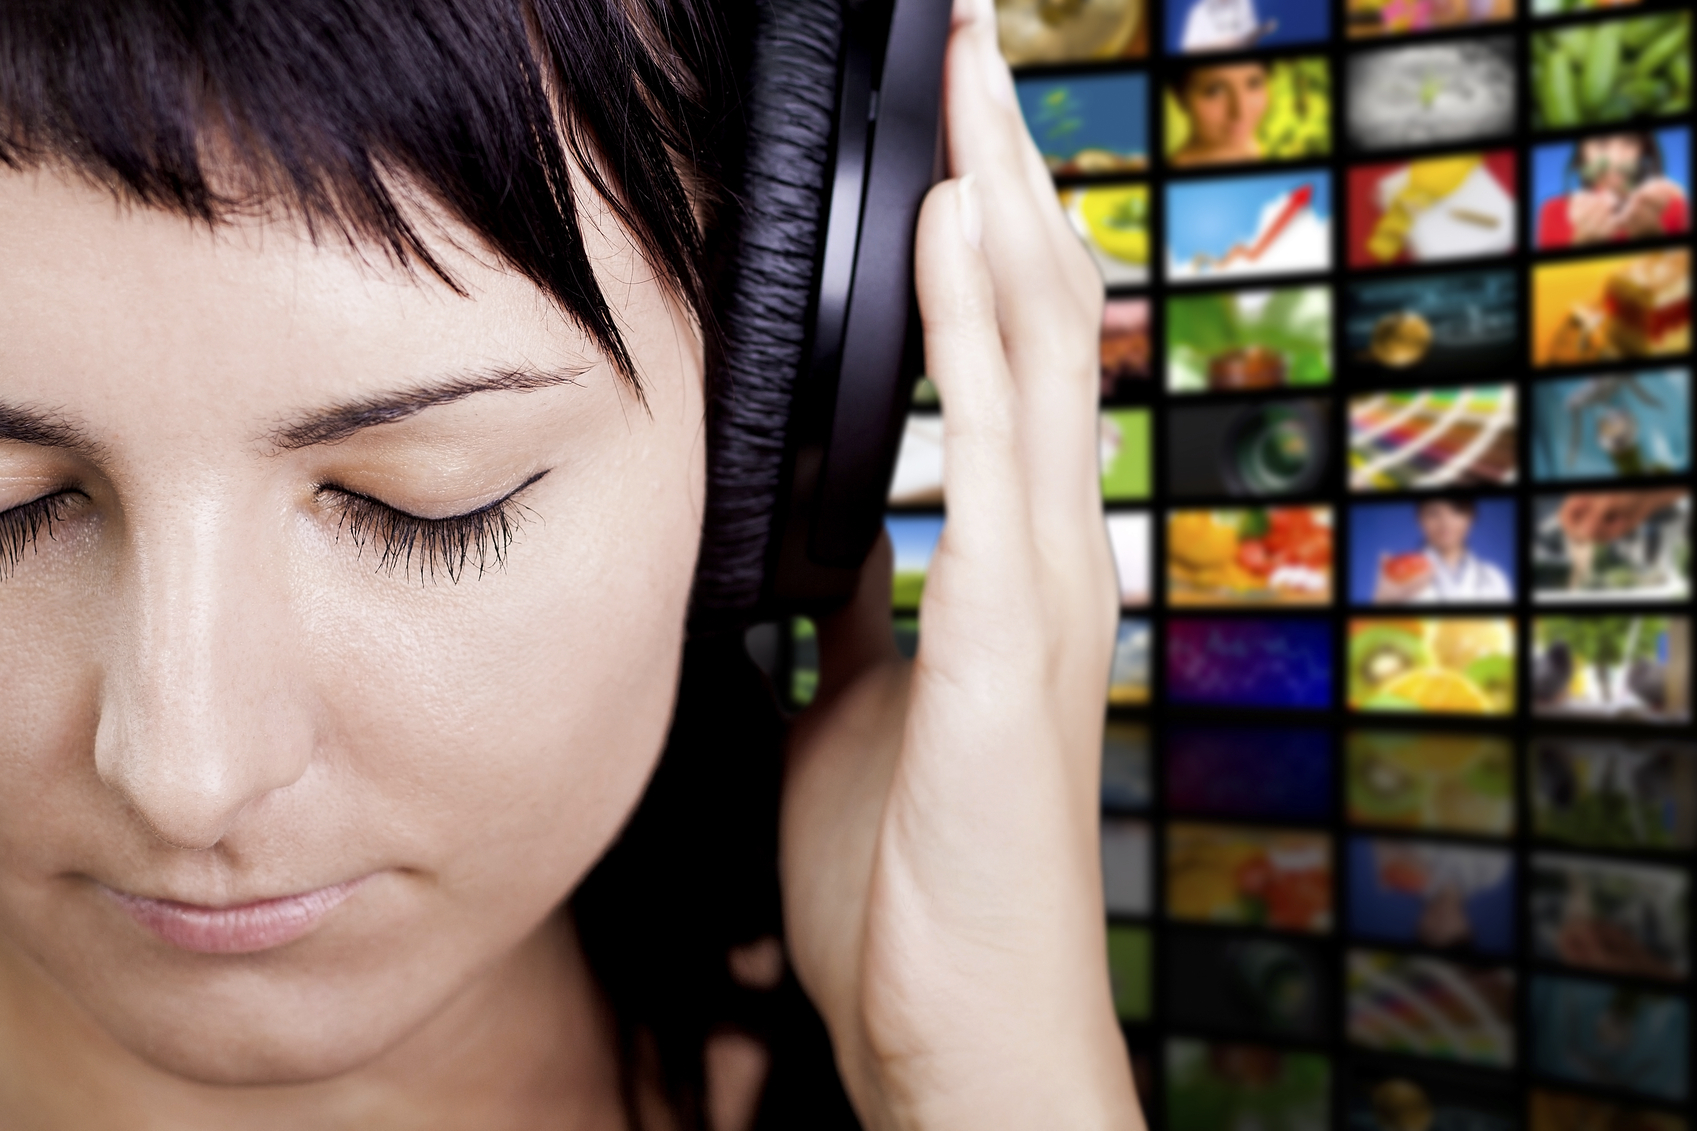 Young woman with headphones, enjoying nice music.